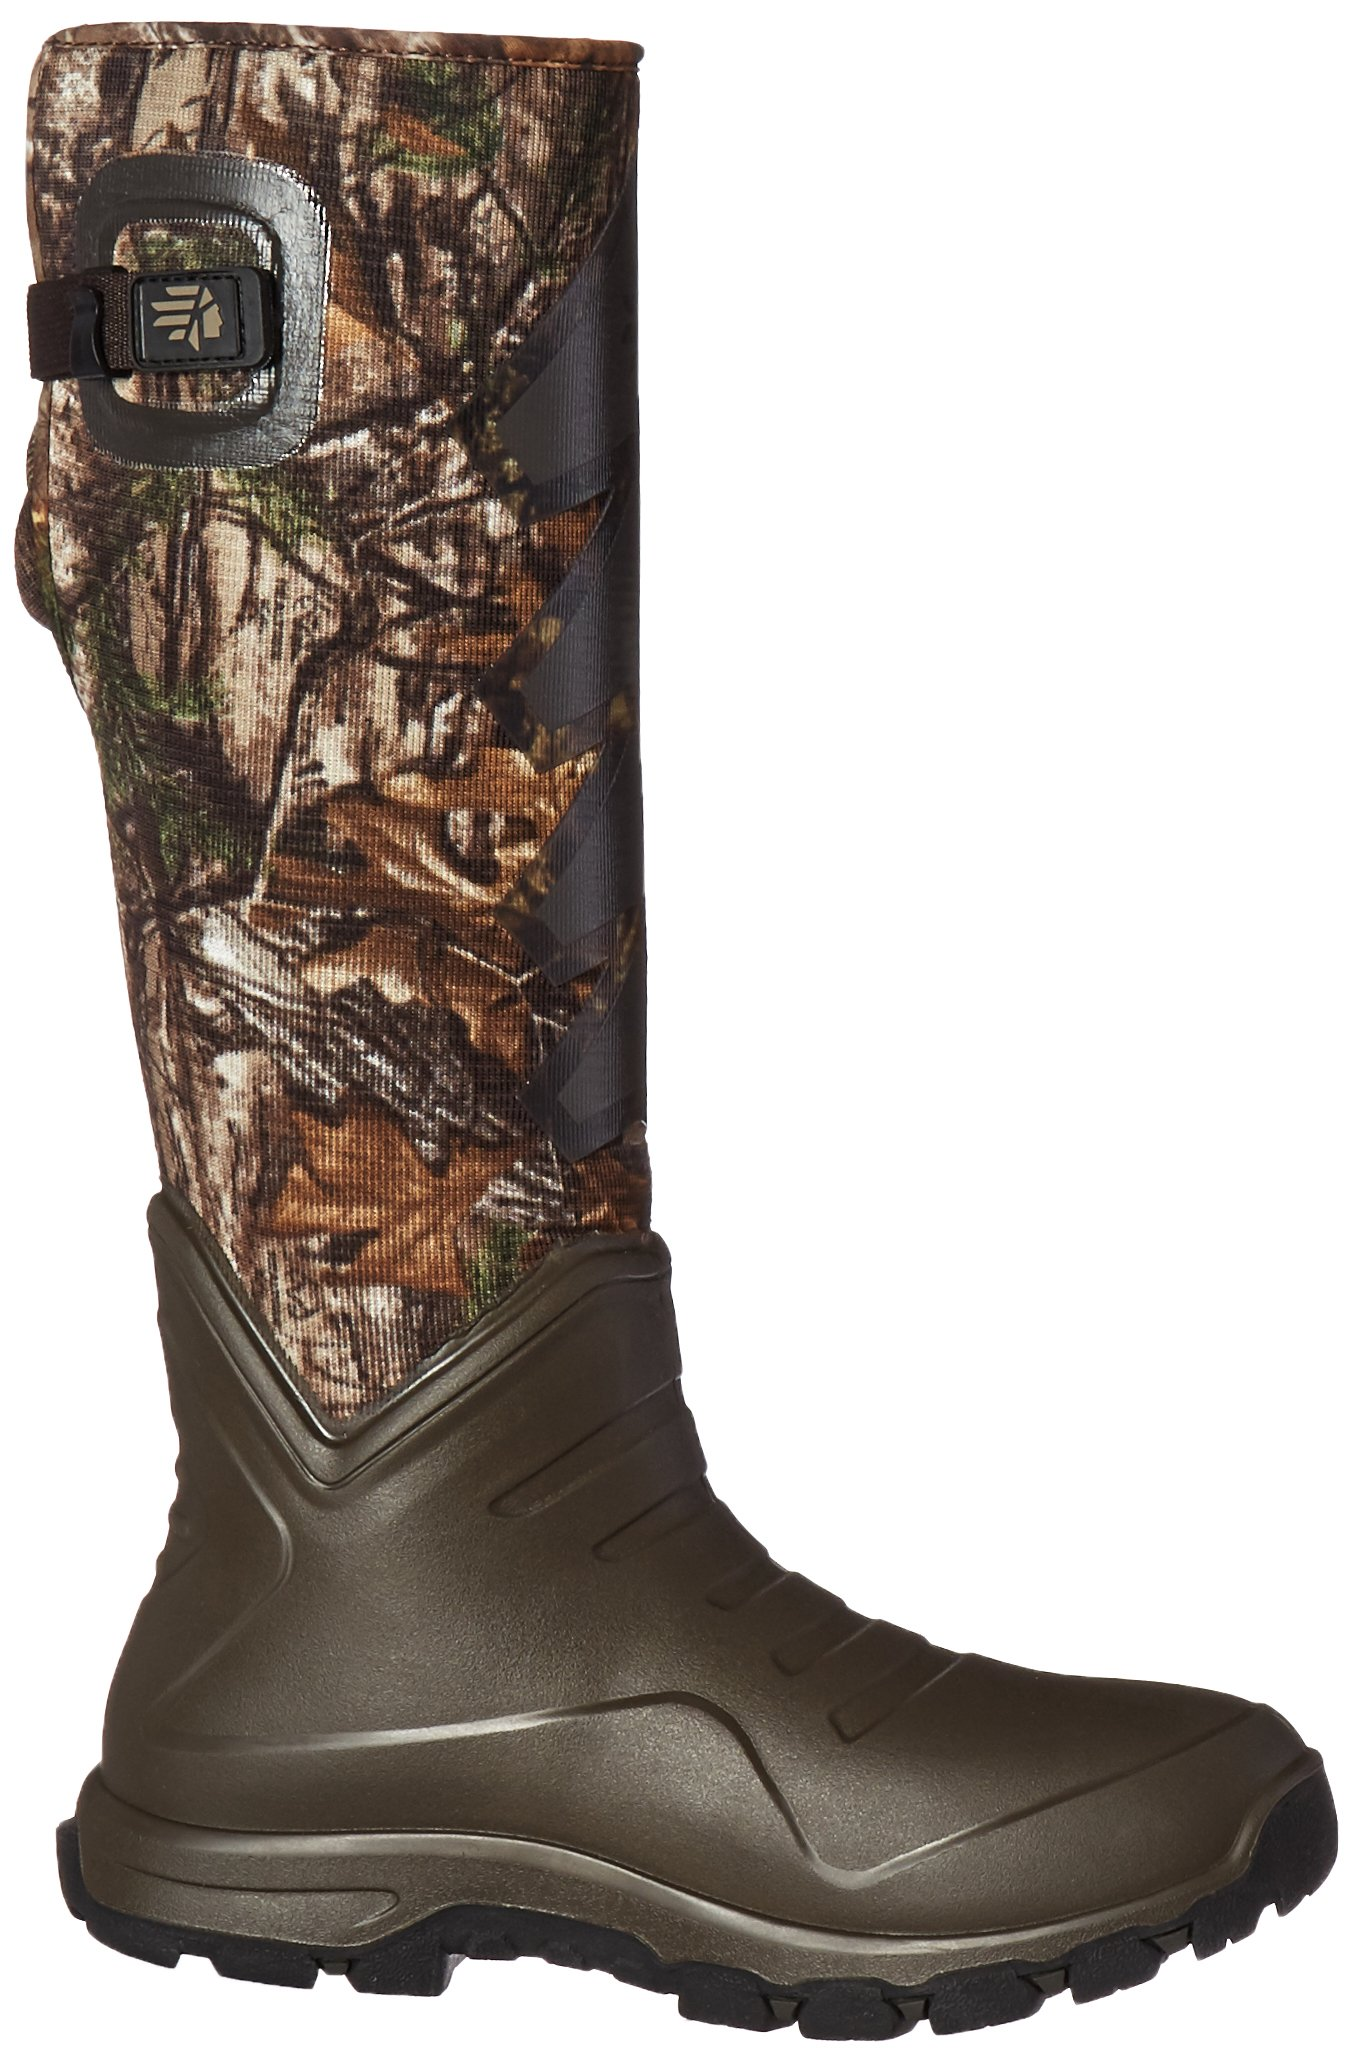 Lacrosse Men's Aerohead Sport 16'' 3.5MM Hunting Shoes Realtree Extra 13 M US by Lacrosse (Image #7)